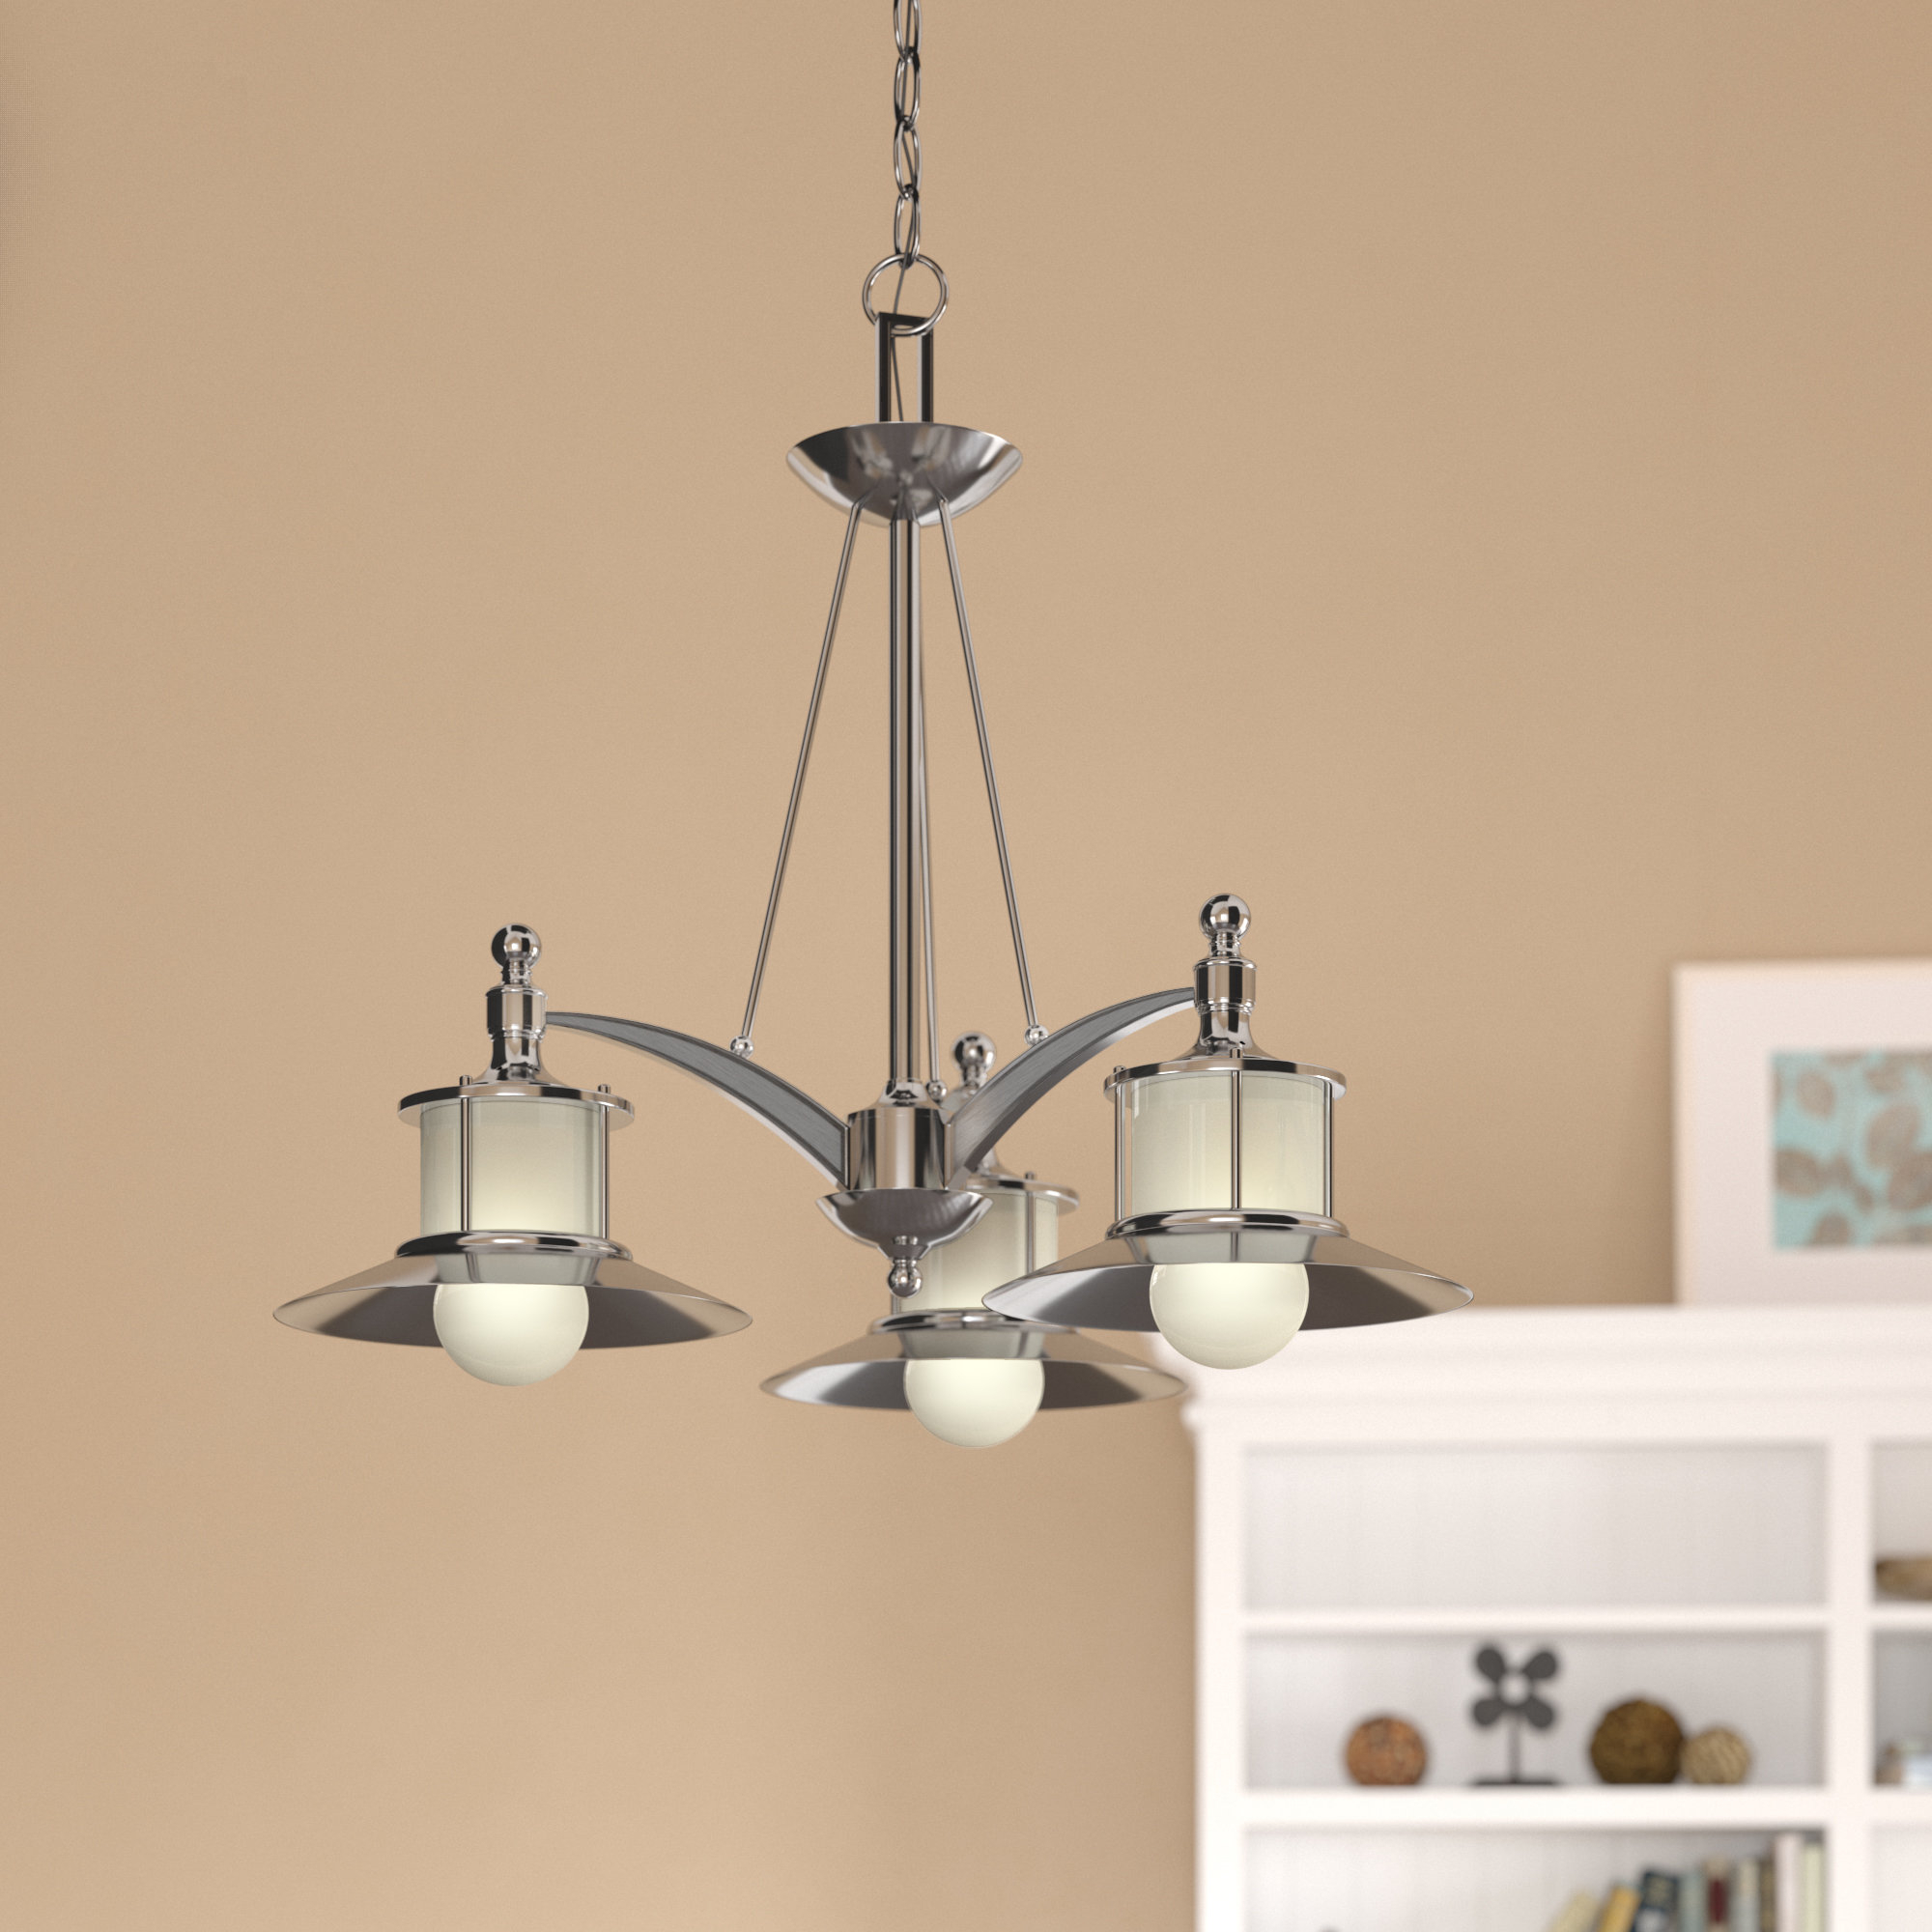 Widely Used Salley 3 Light Shaded Chandelier Regarding Alayna 4 Light Shaded Chandeliers (Gallery 5 of 20)